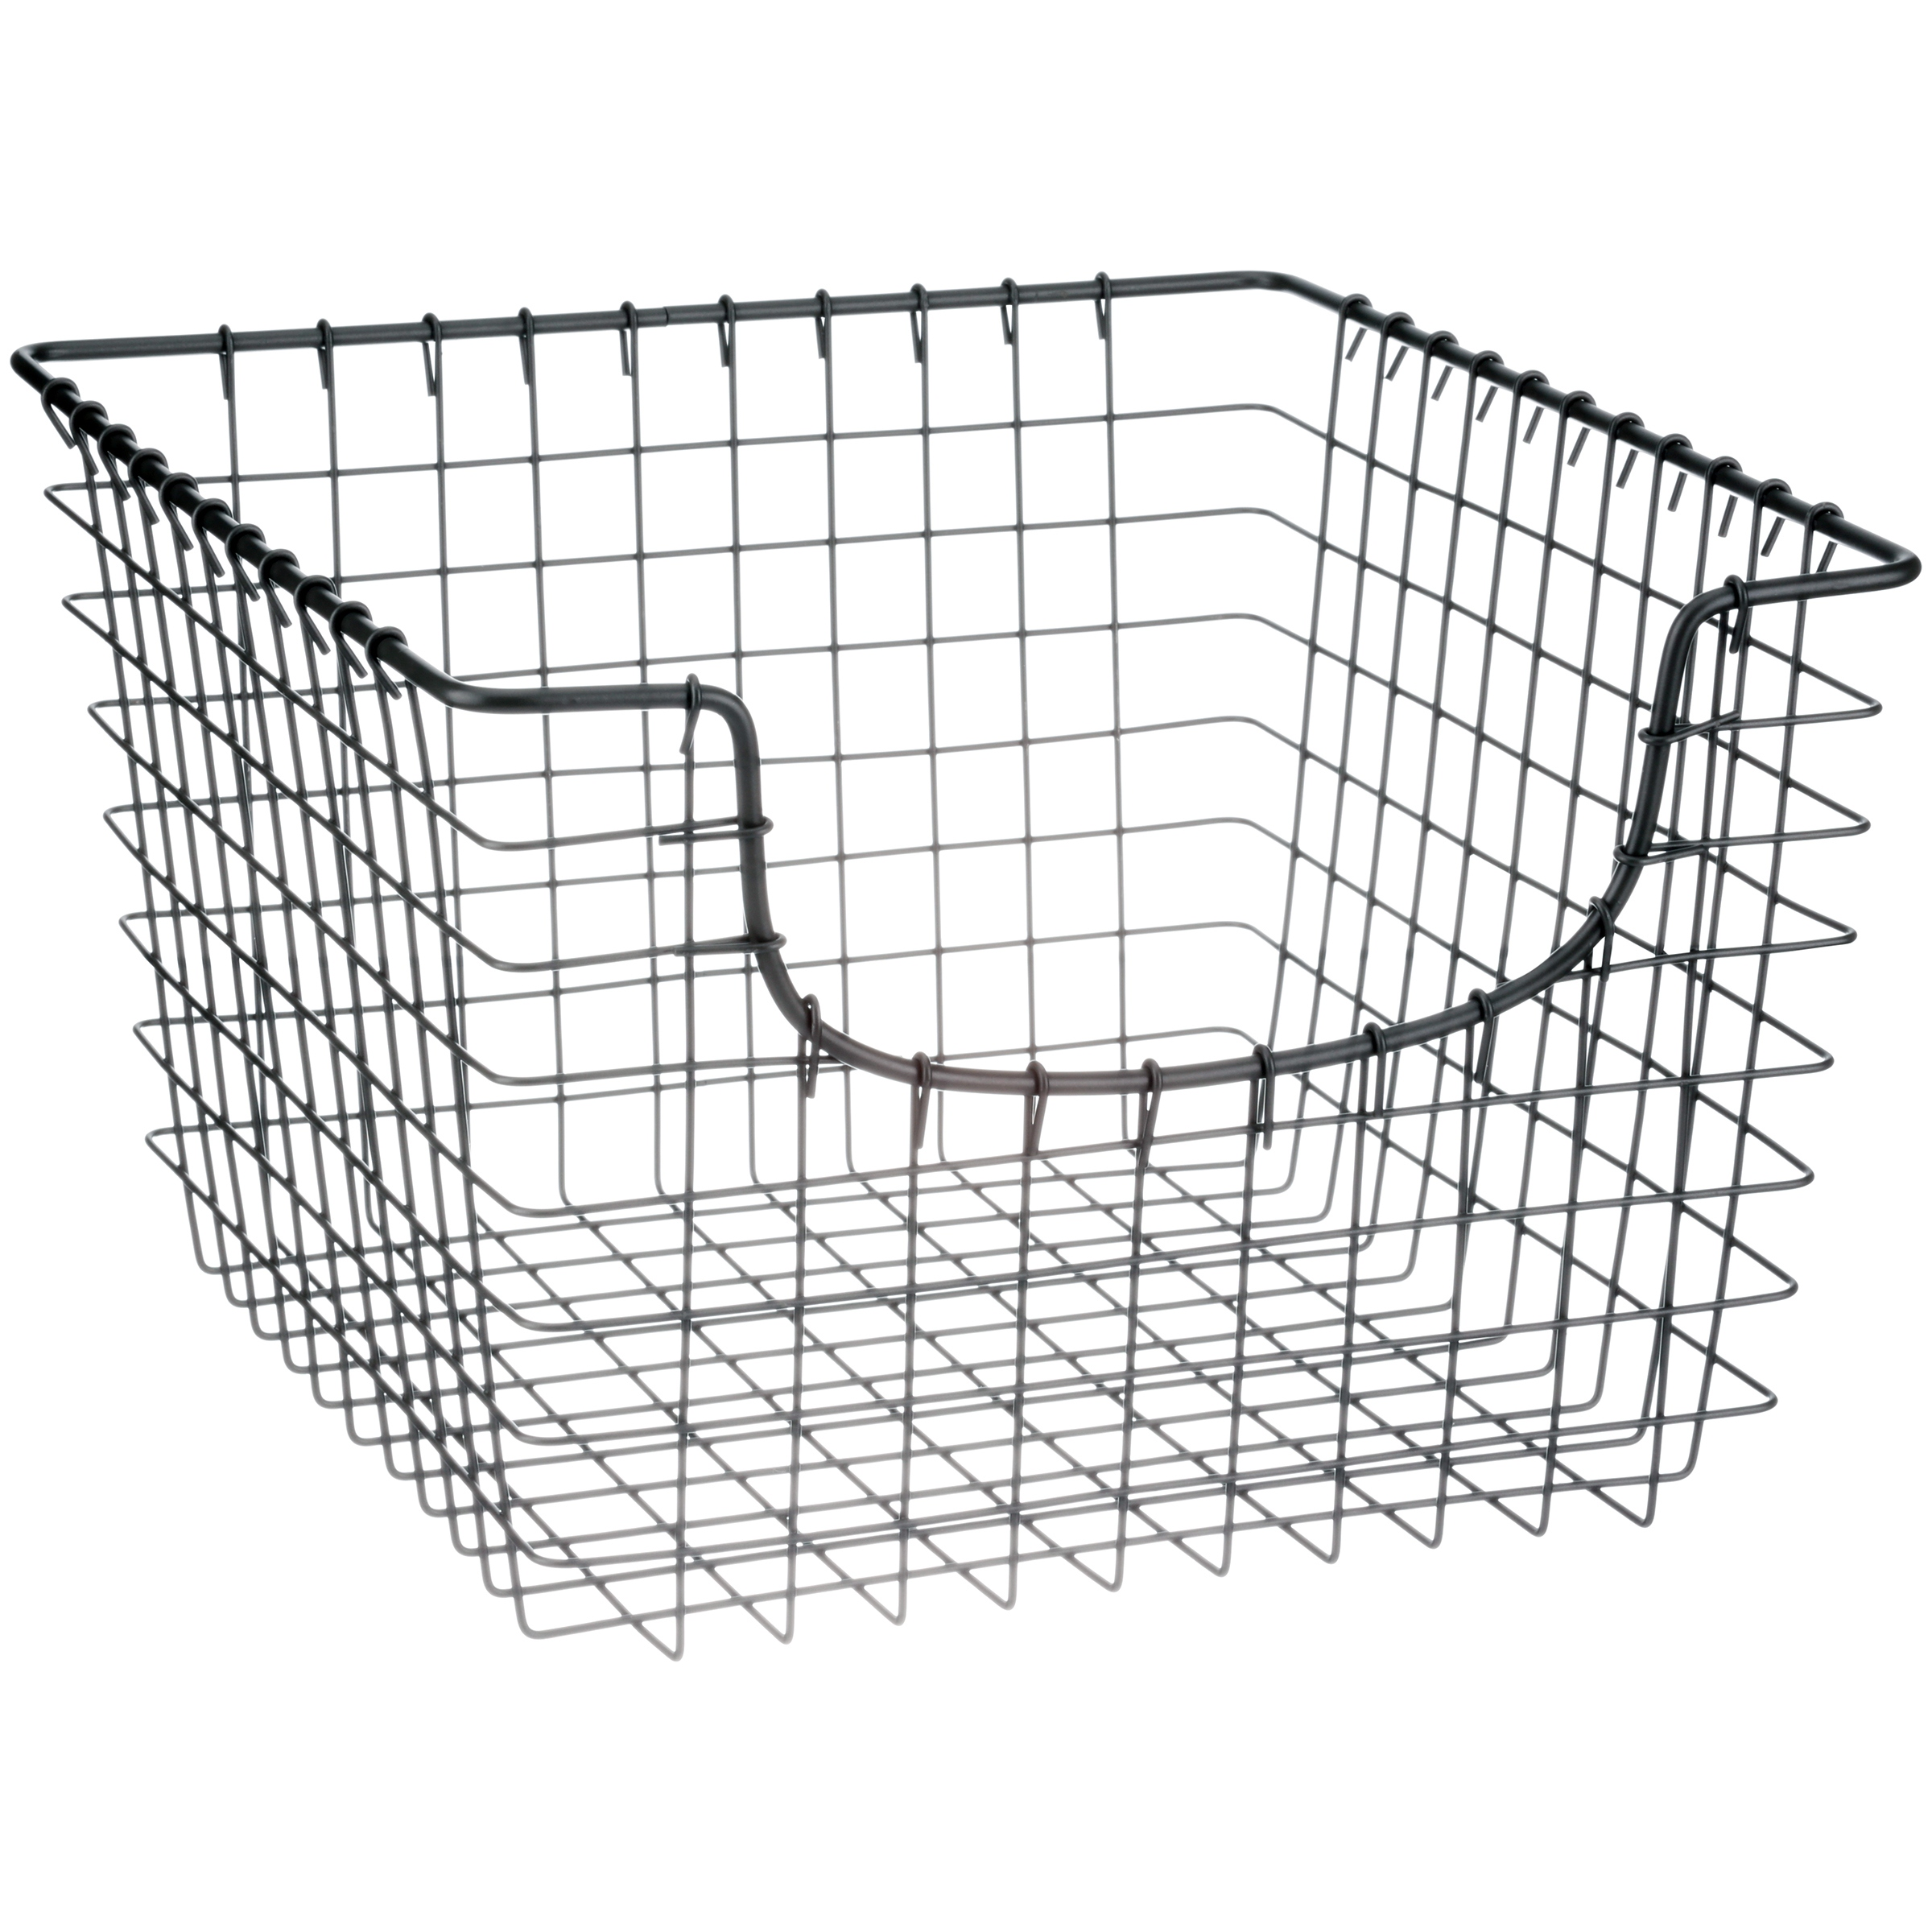 Spectrum Scoop Basket by Spectrum Diversified Designs, LLC